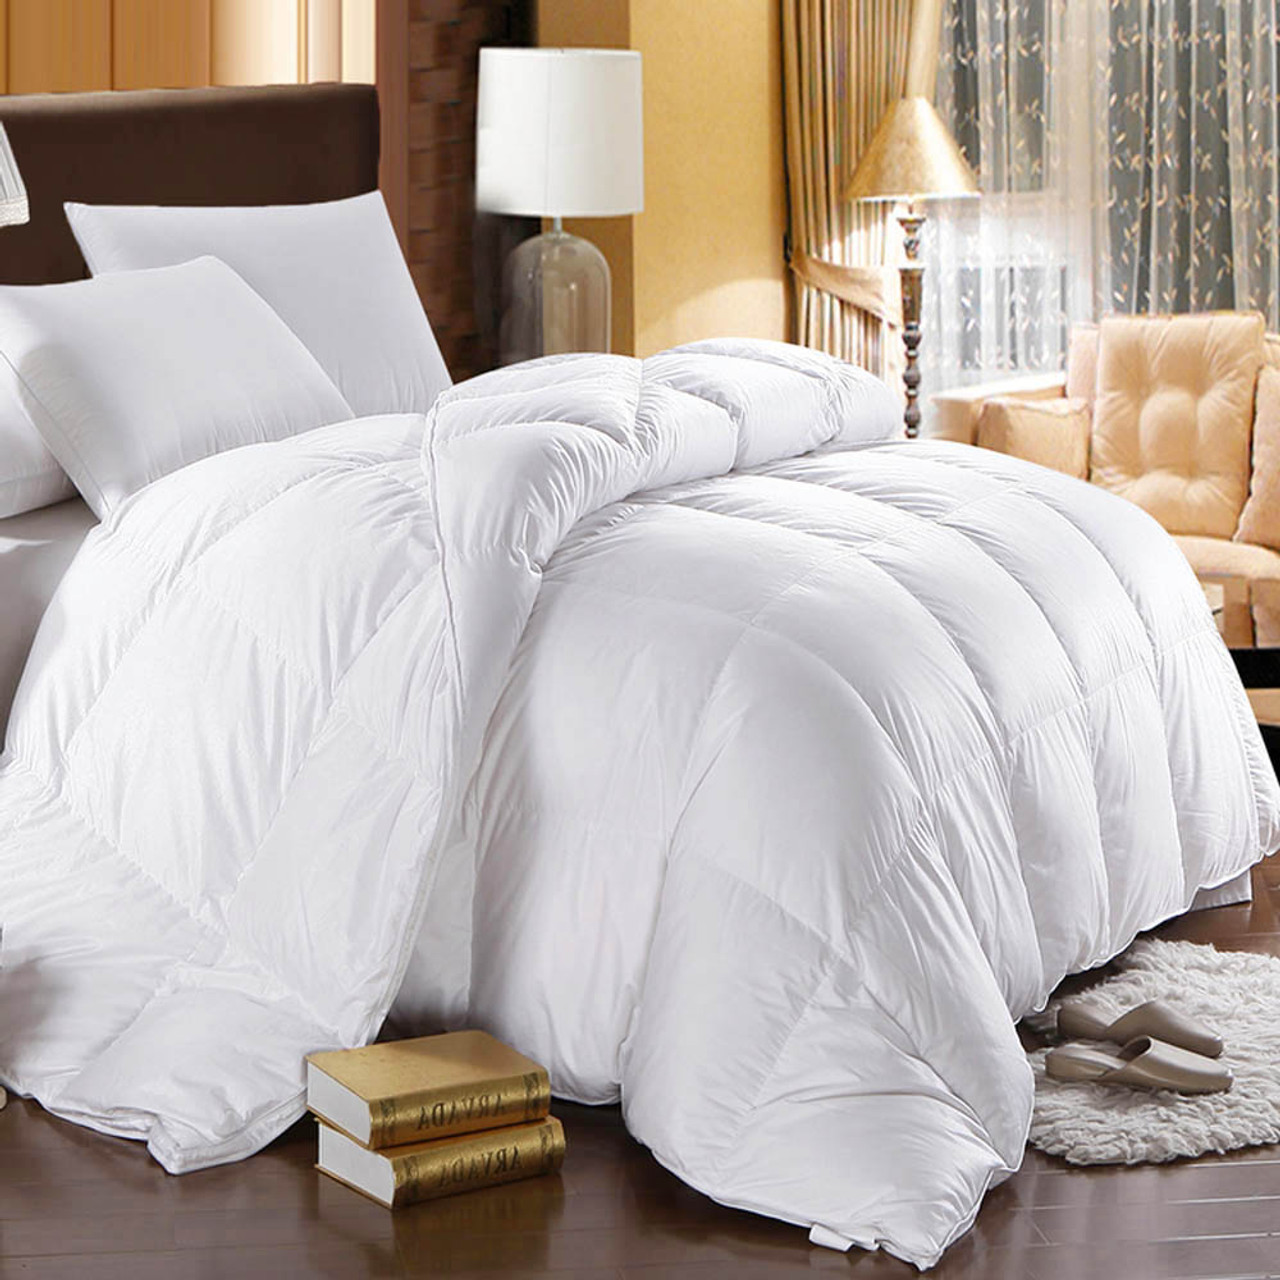 750 Fill White Goose Down Comforter Oversized Extra Warm By Royal Hotel